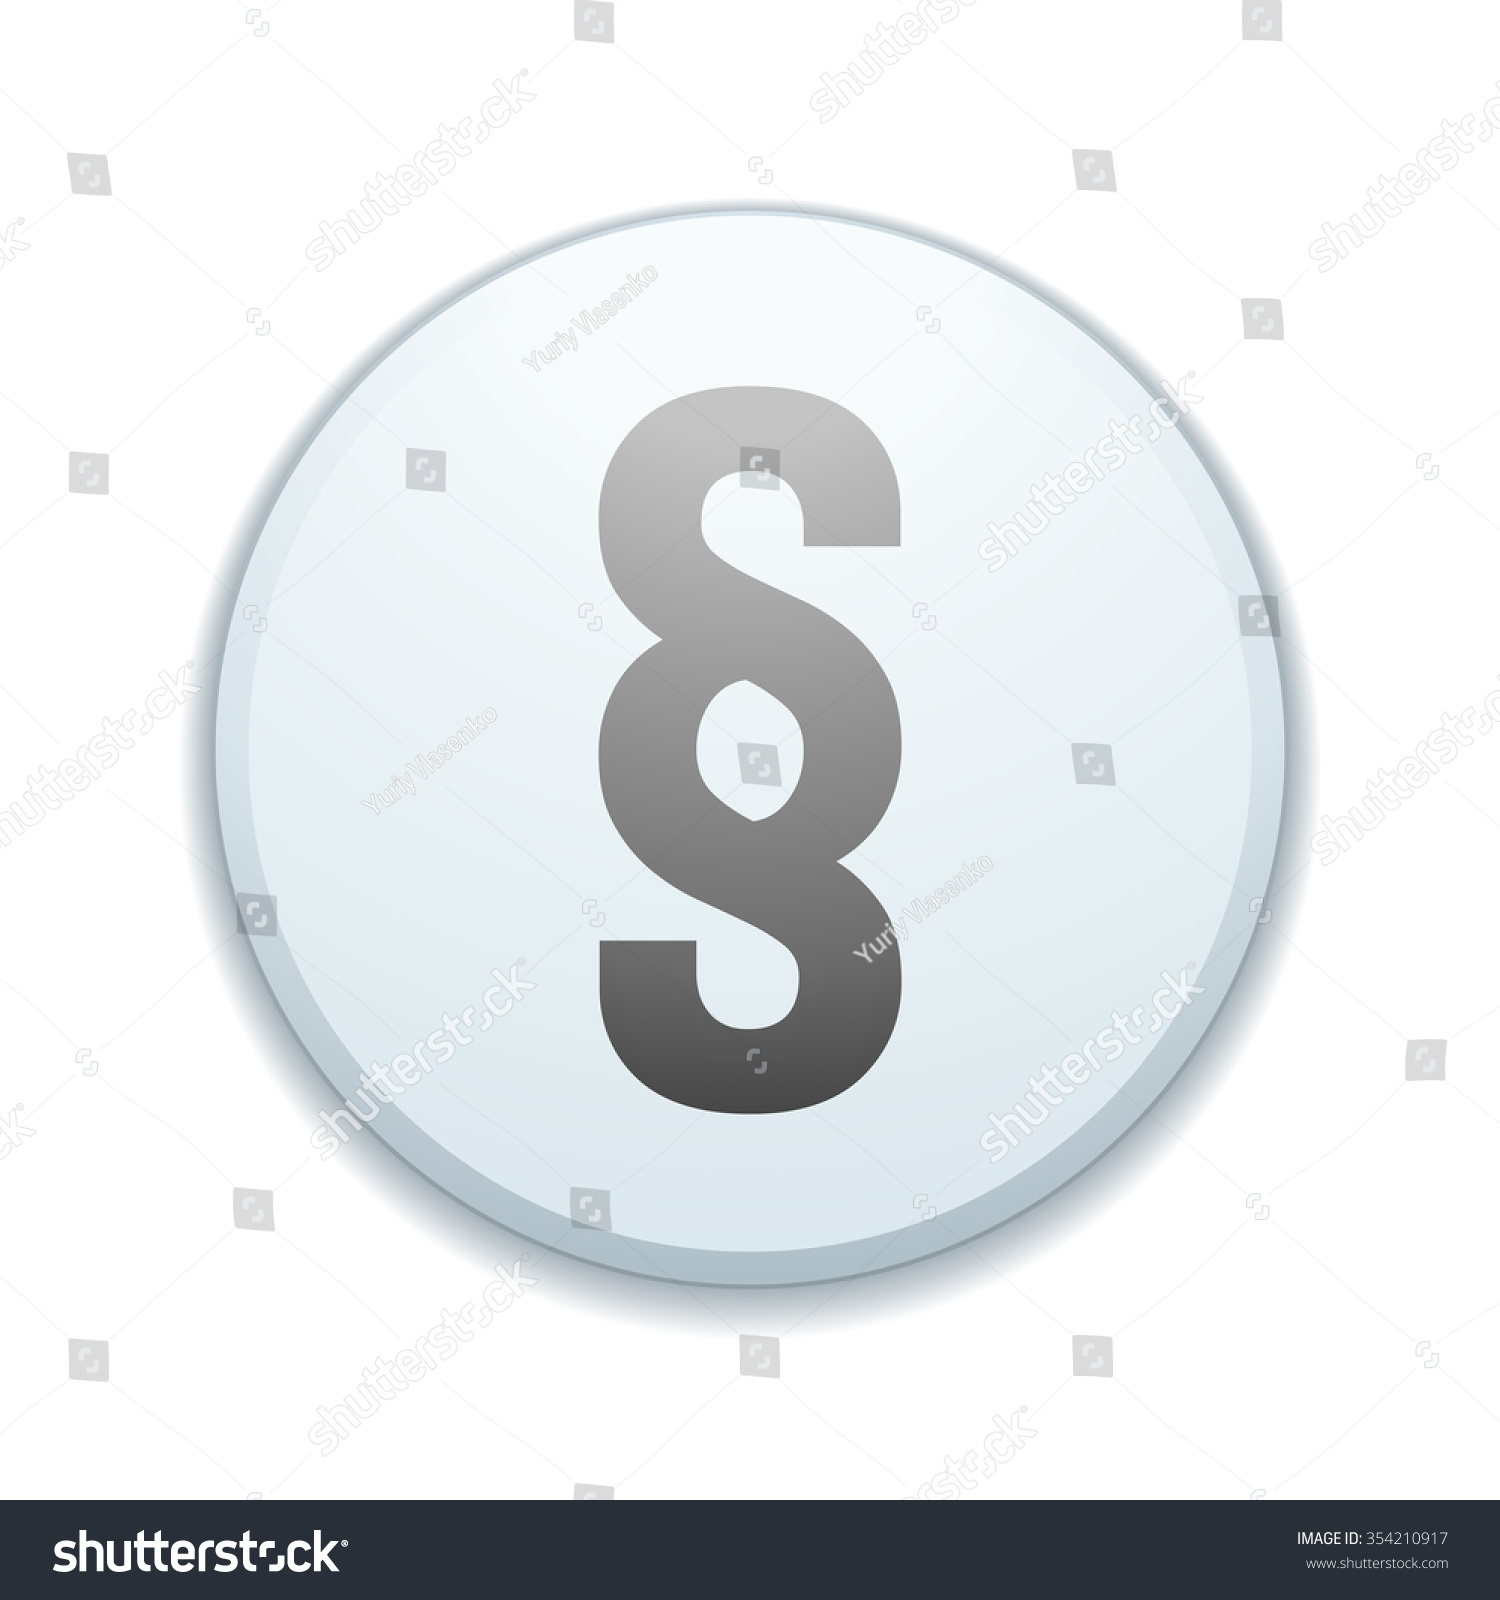 Section sign button stock illustration 354210917 shutterstock section sign button buycottarizona Choice Image